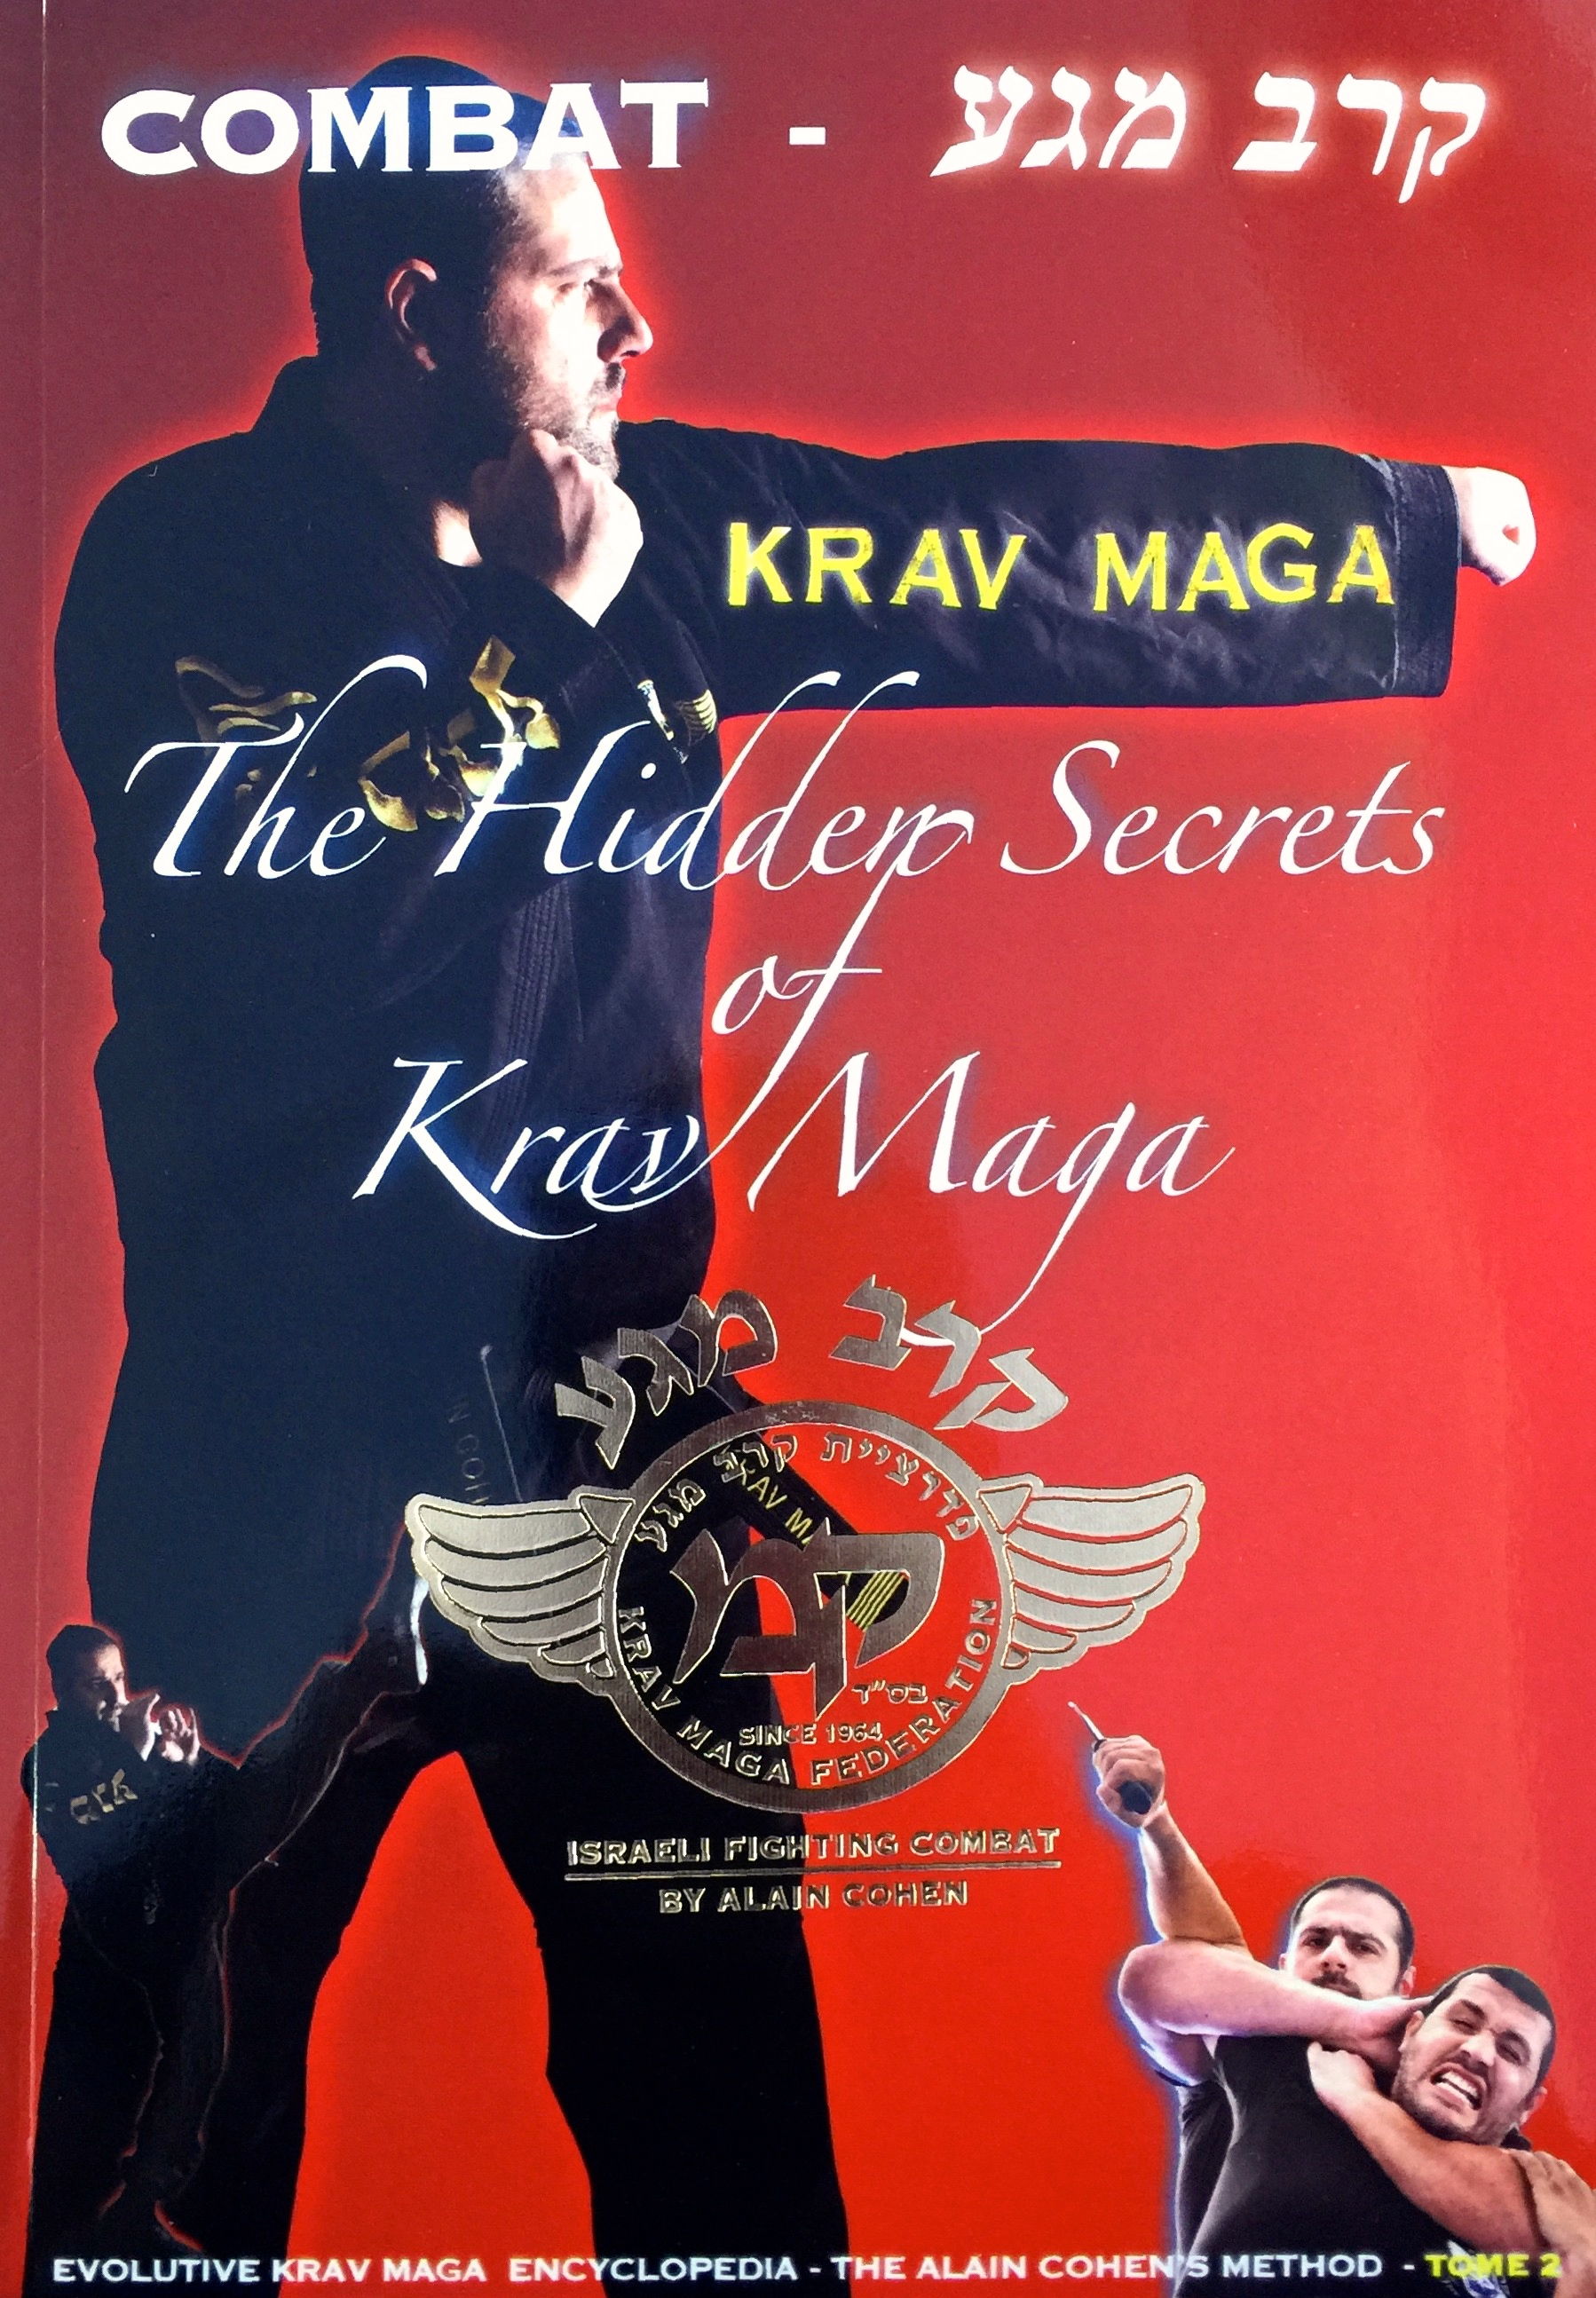 KRAV MAGA – COMBAT, THE HIDDEN SECRETS OF KRAV MAGA